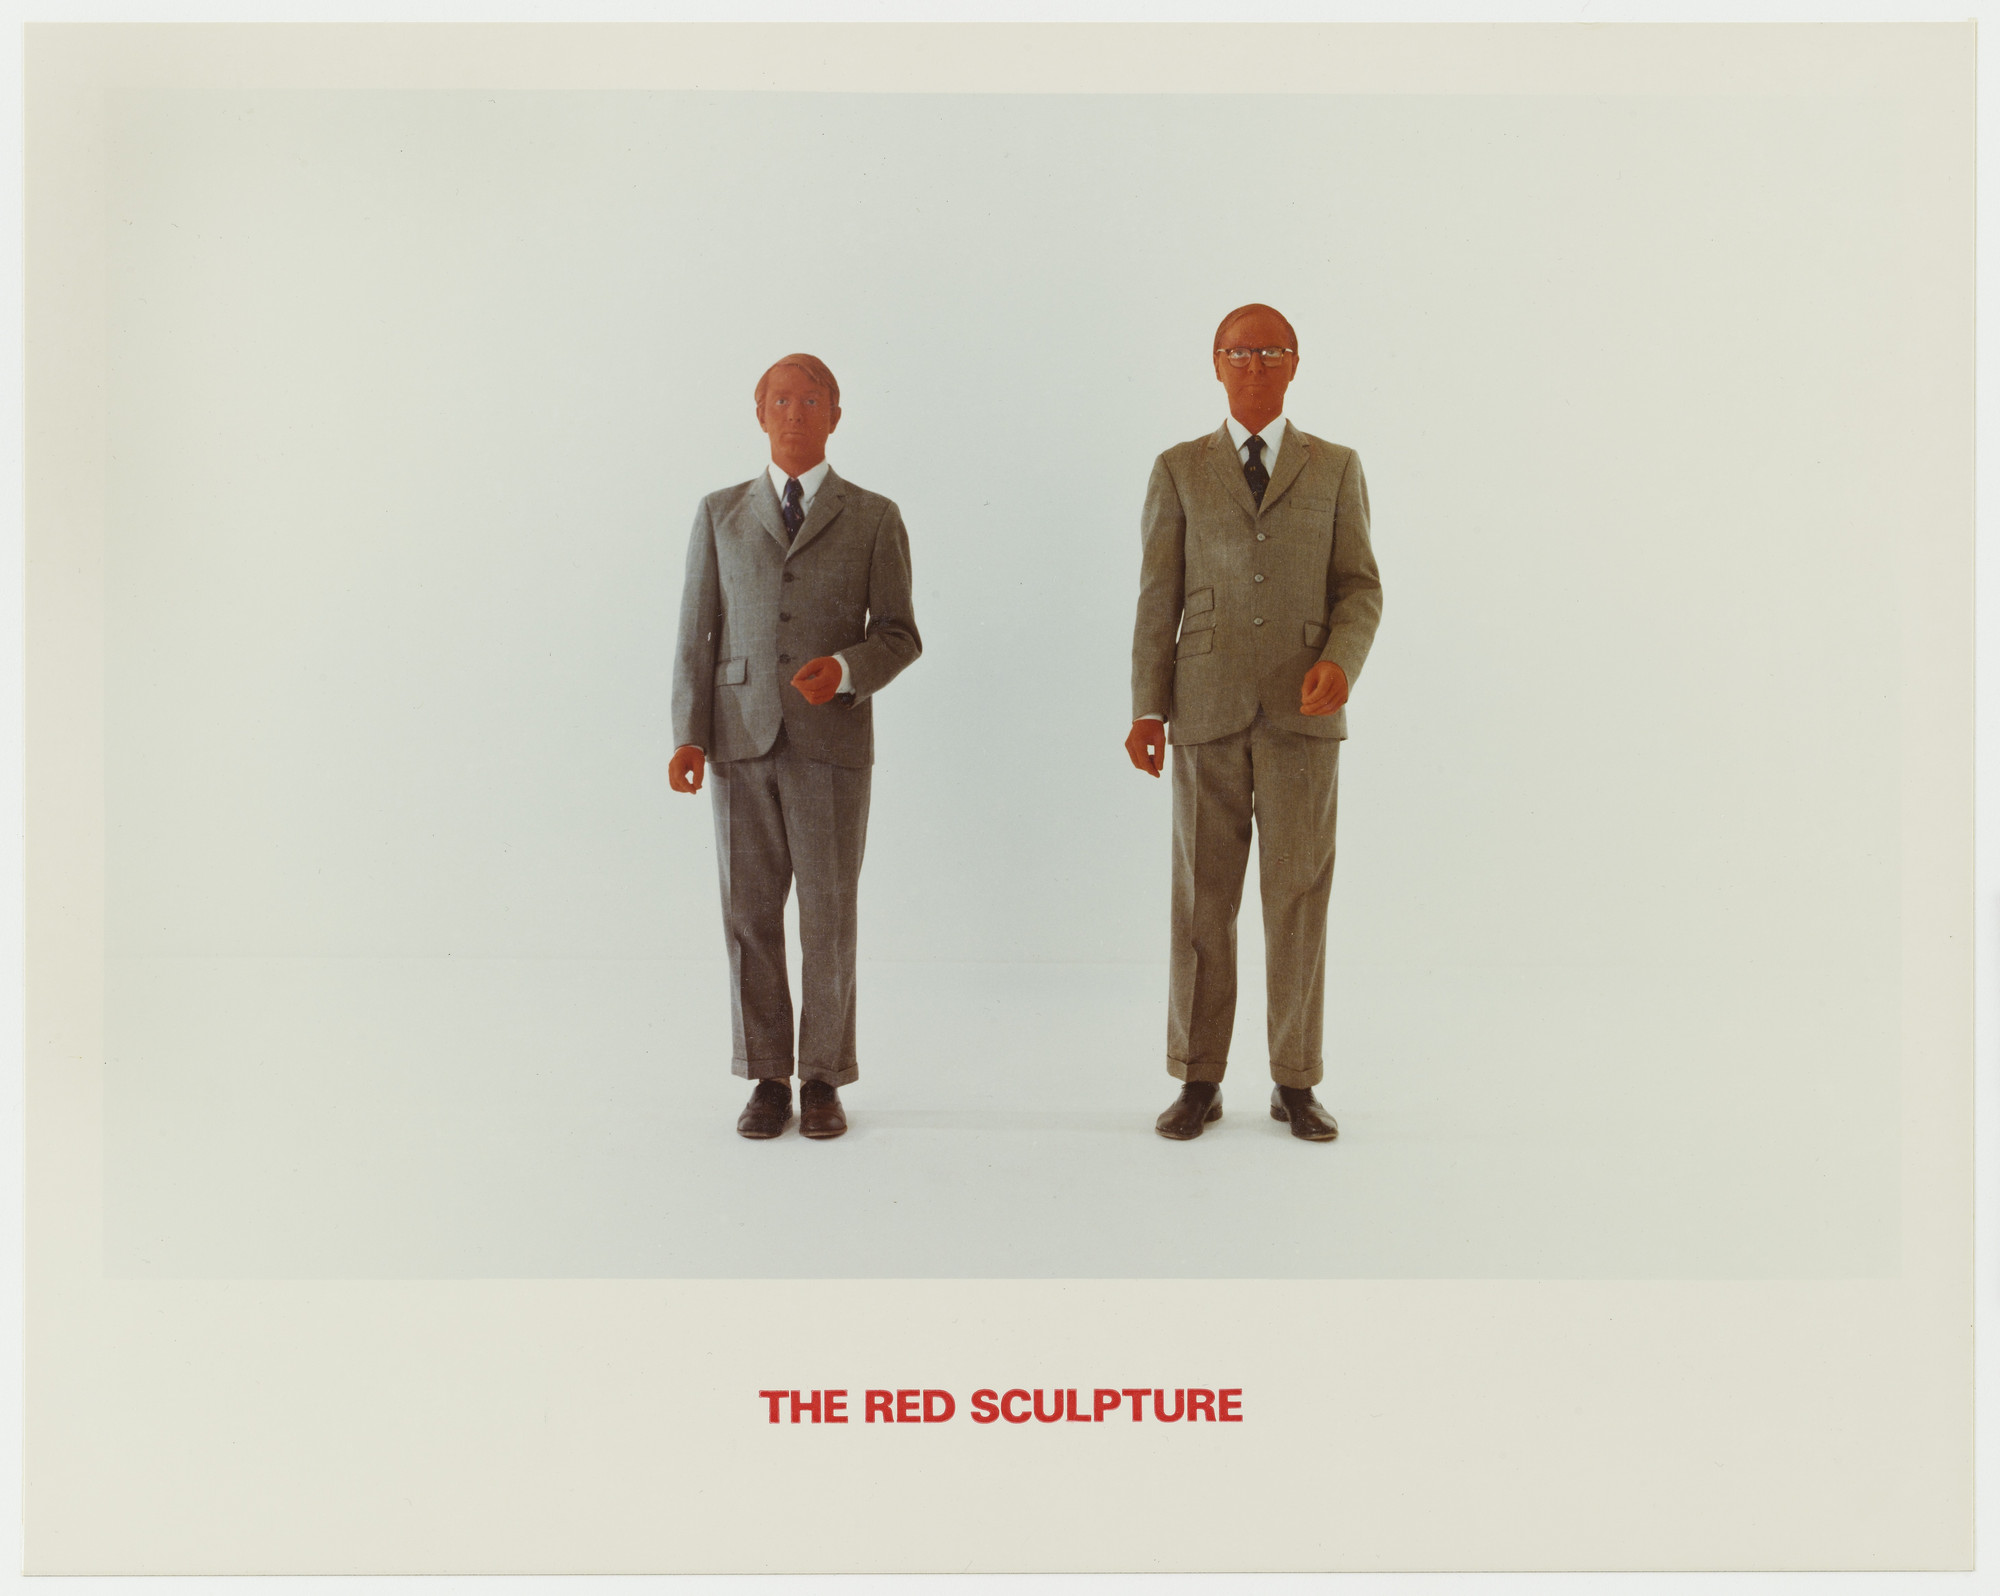 Gilbert & George. The Red Sculpture. 1975